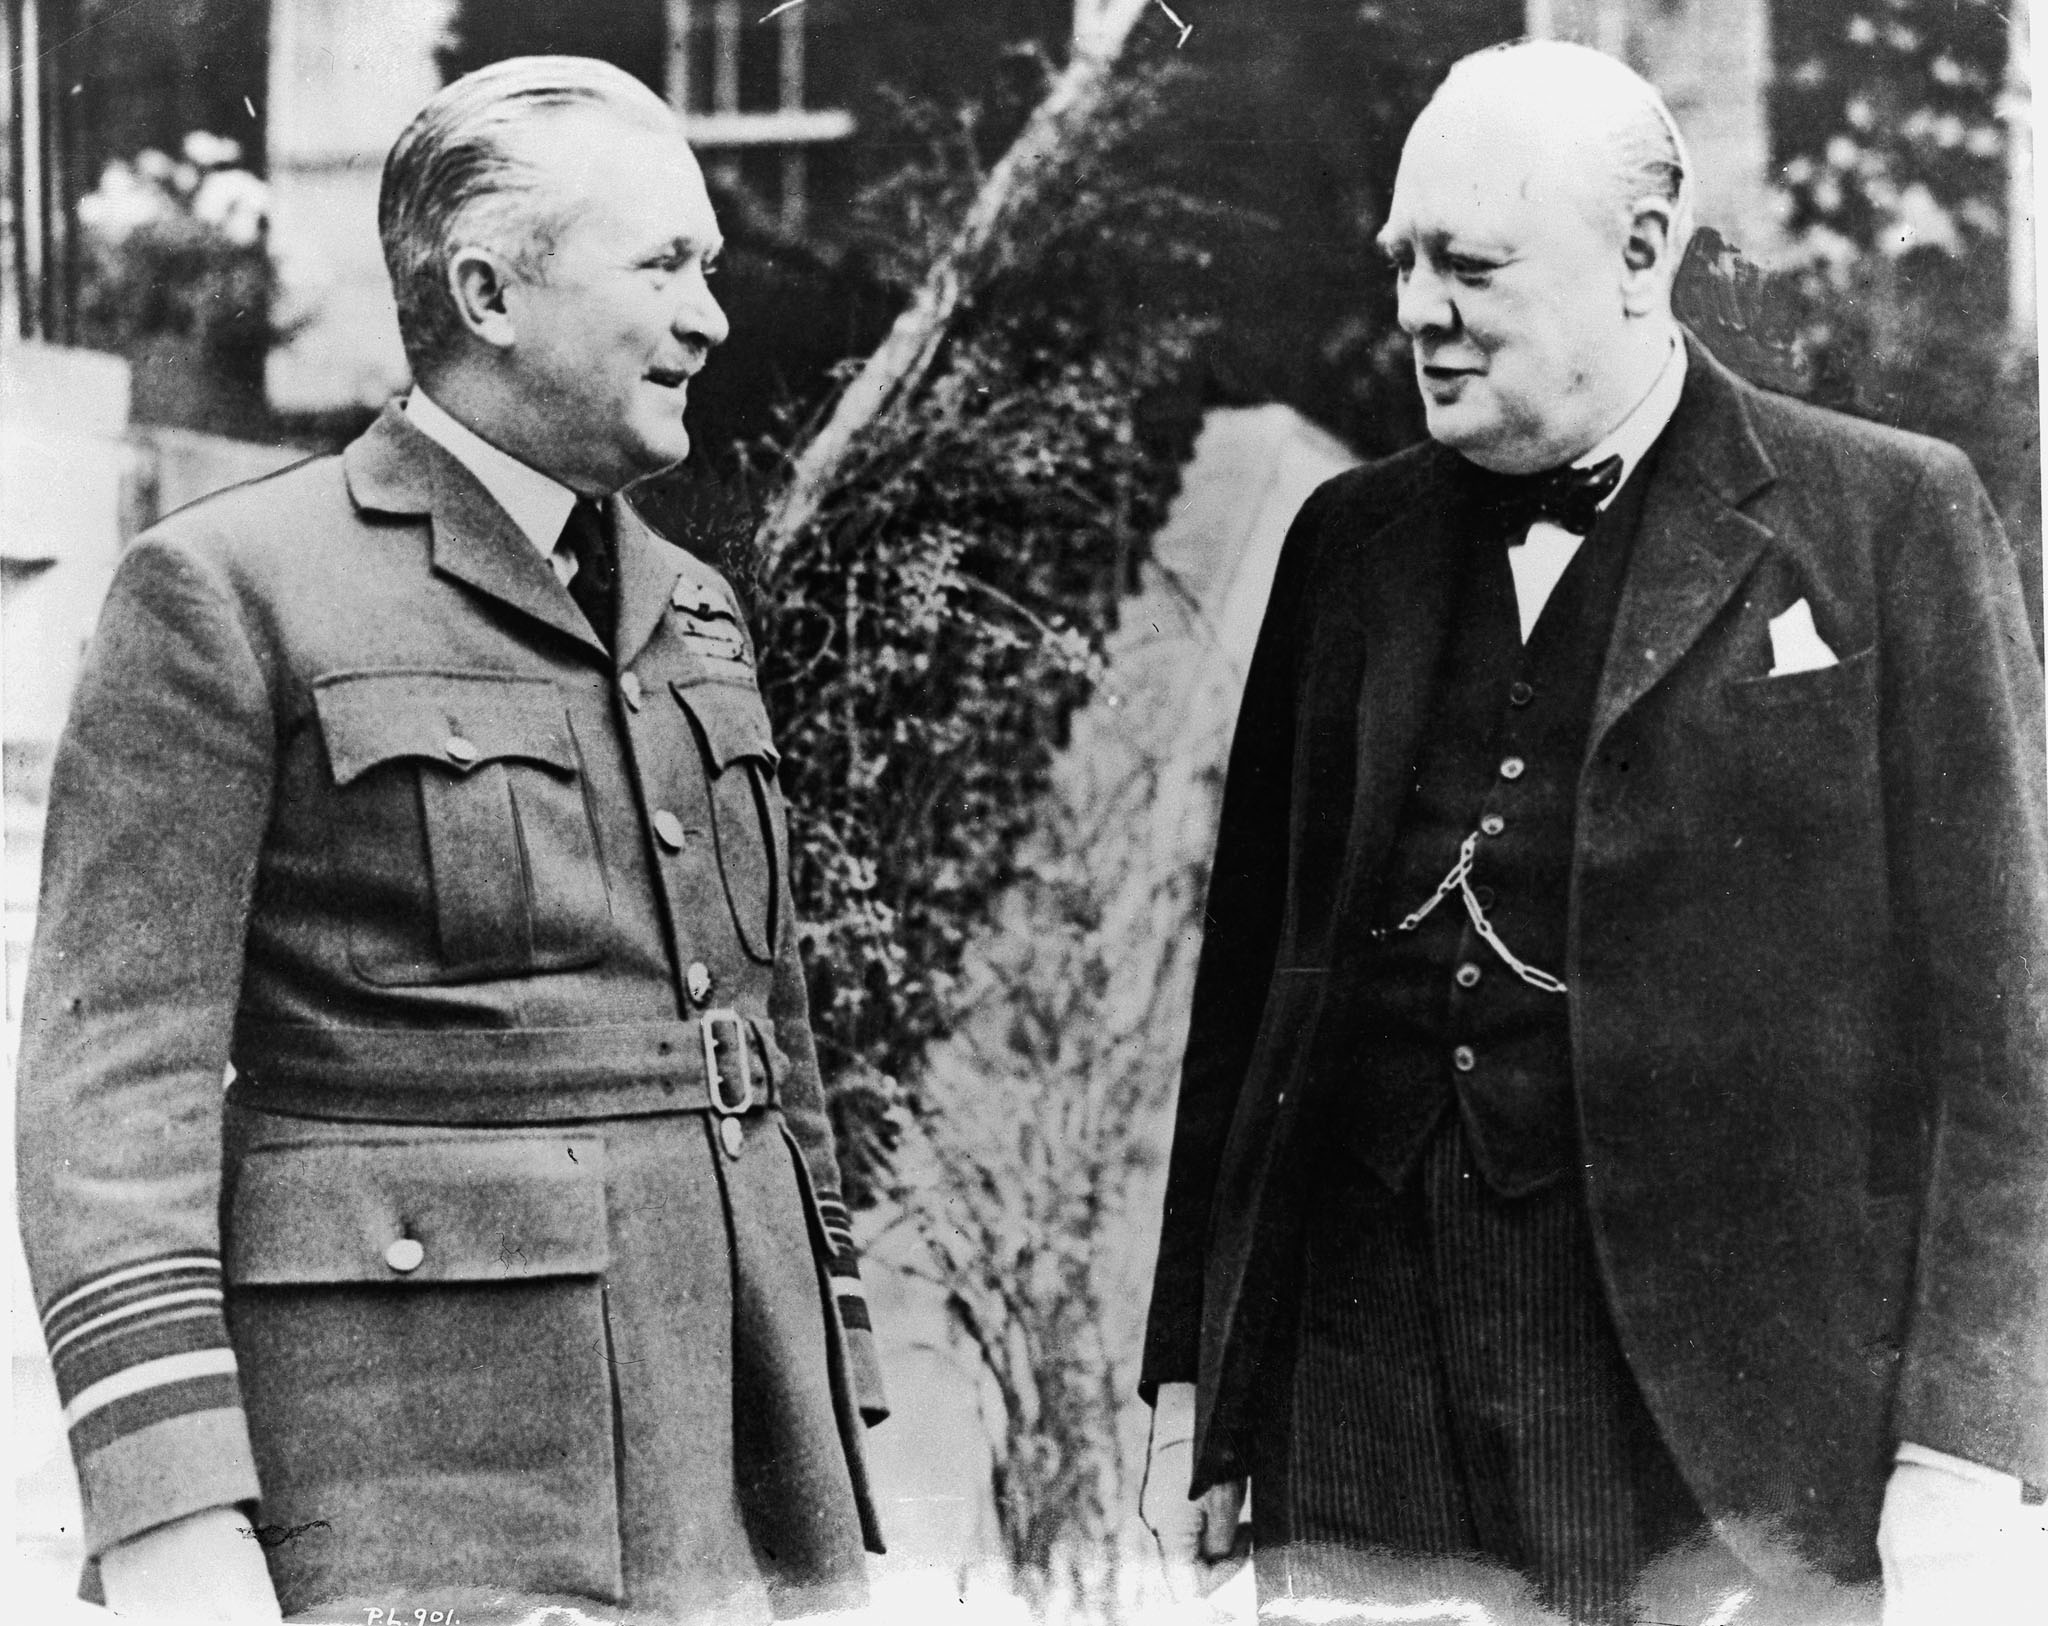 Air Vice Marshal William Avery Bishop chats with British Prime Minister Winston Churchill in England in 1940. PHOTO: DND